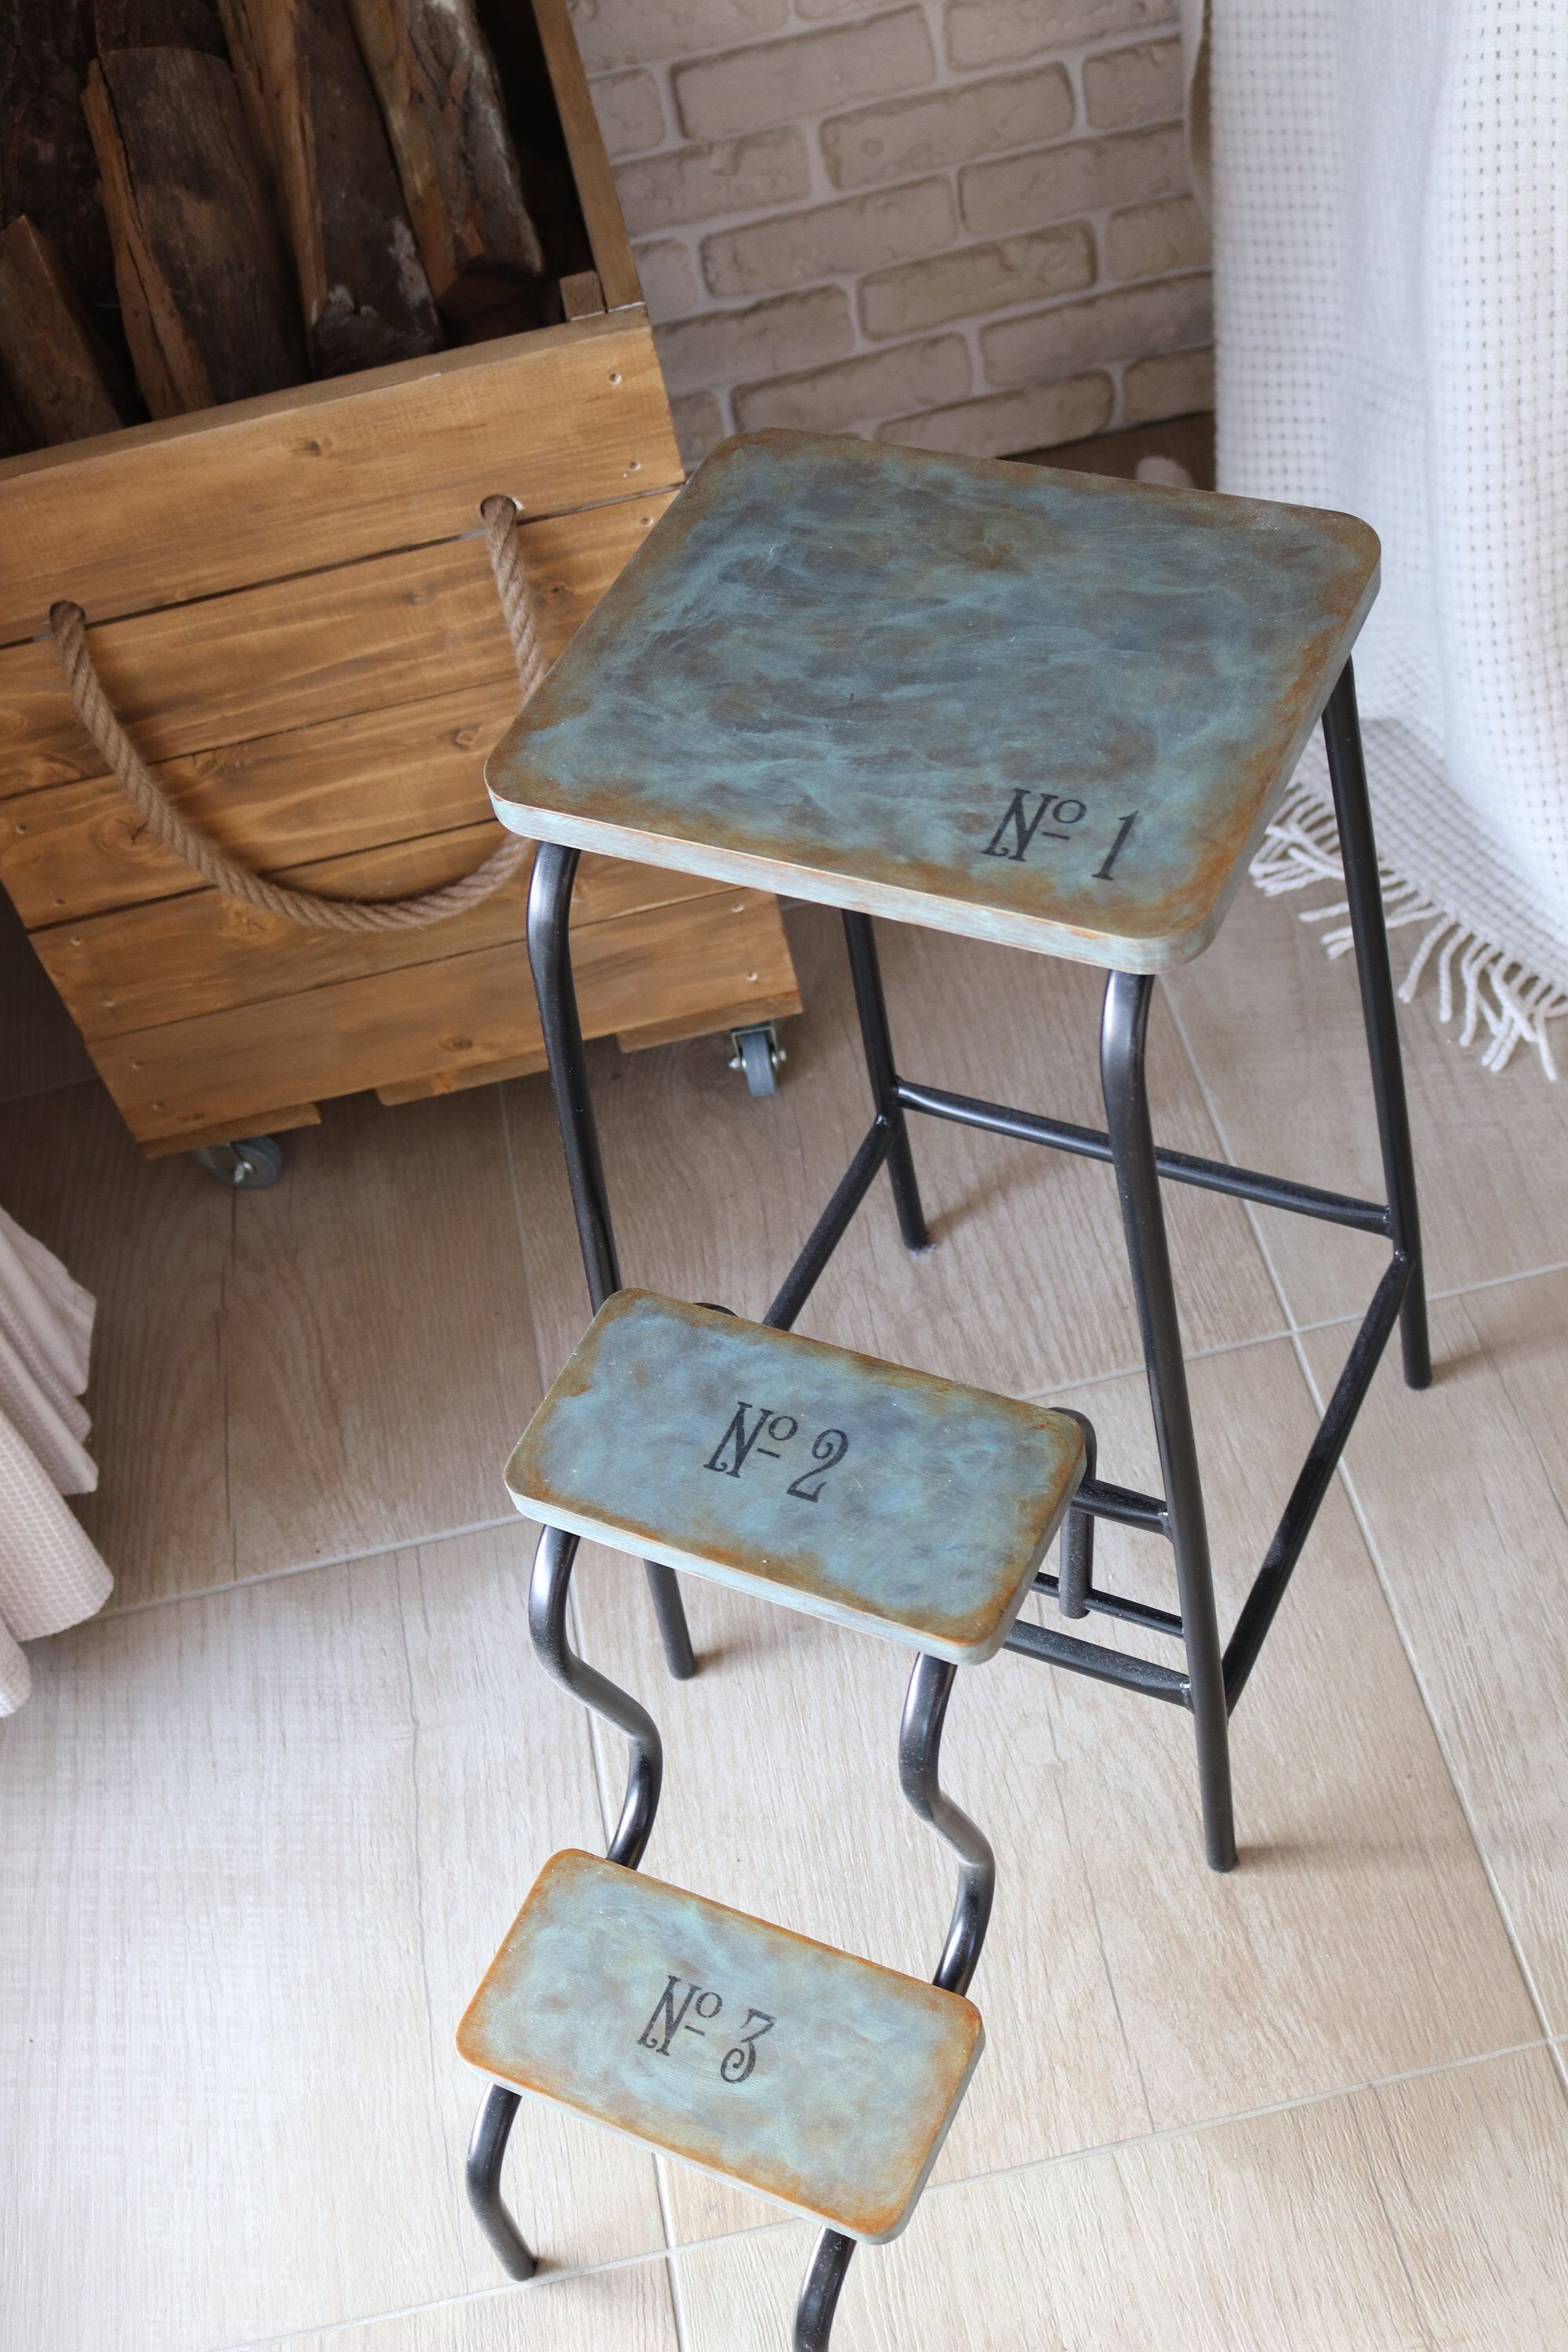 Bedside Step Stools For Adults: Step Stool Adult, Industrial Stool, Plant Stand, Blanket